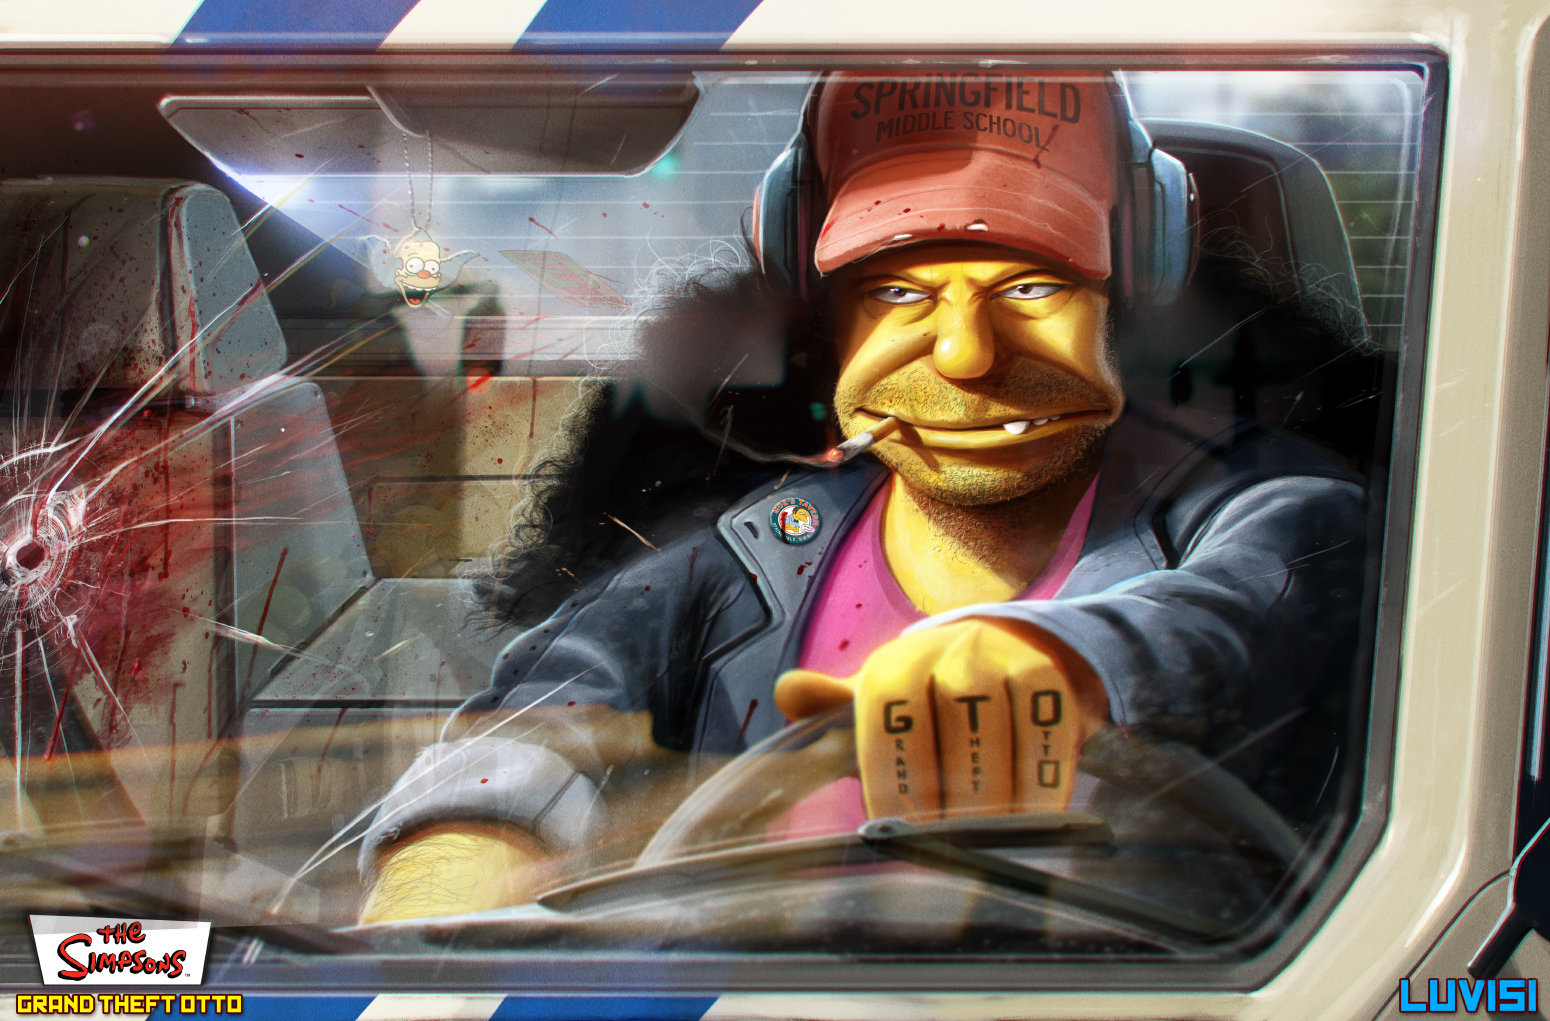 Dan luvisi grand theft otto part 1 by danluvisiart d665ndh